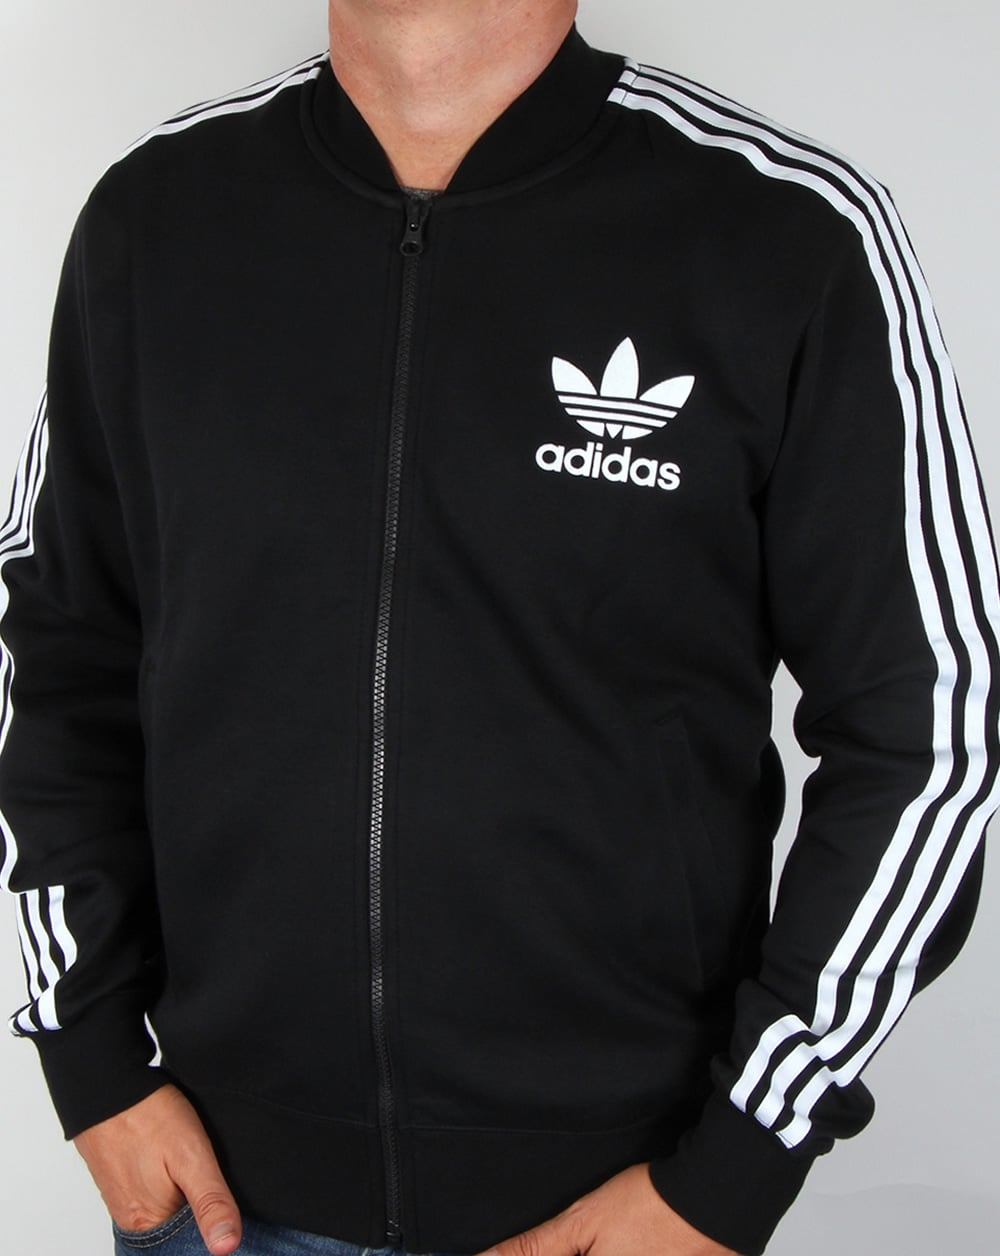 Adidas Men's Superstar Track Jacket Black Originals Jacket